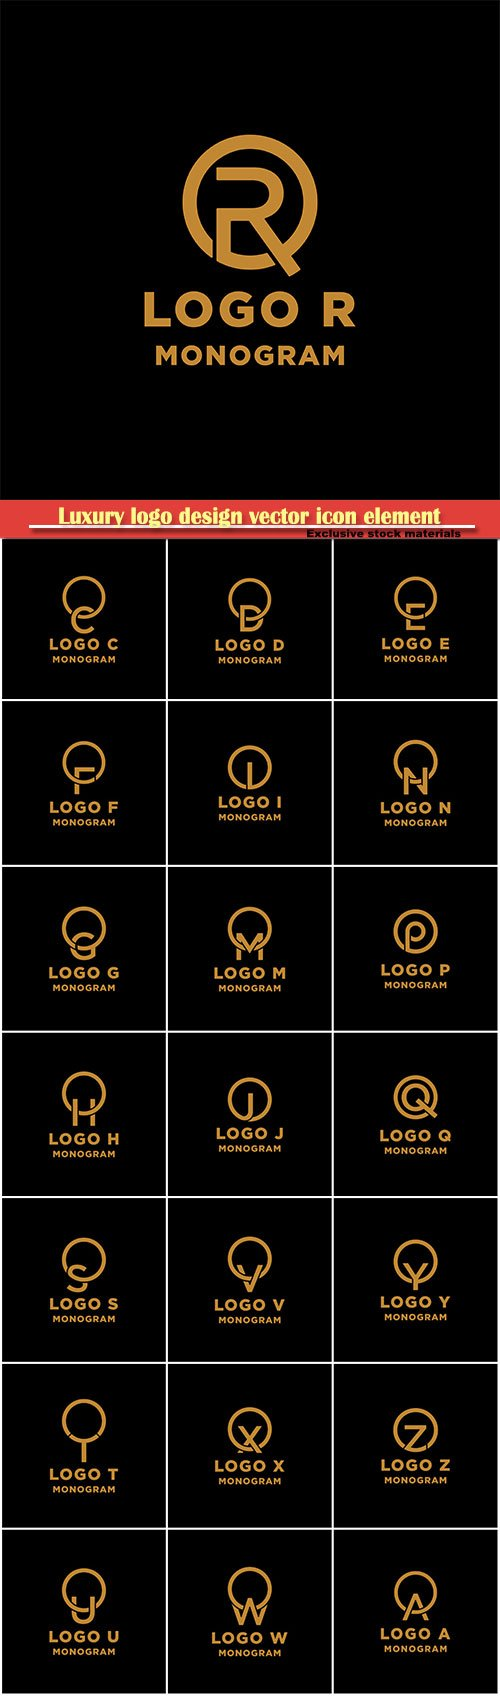 Luxury logo design vector icon element